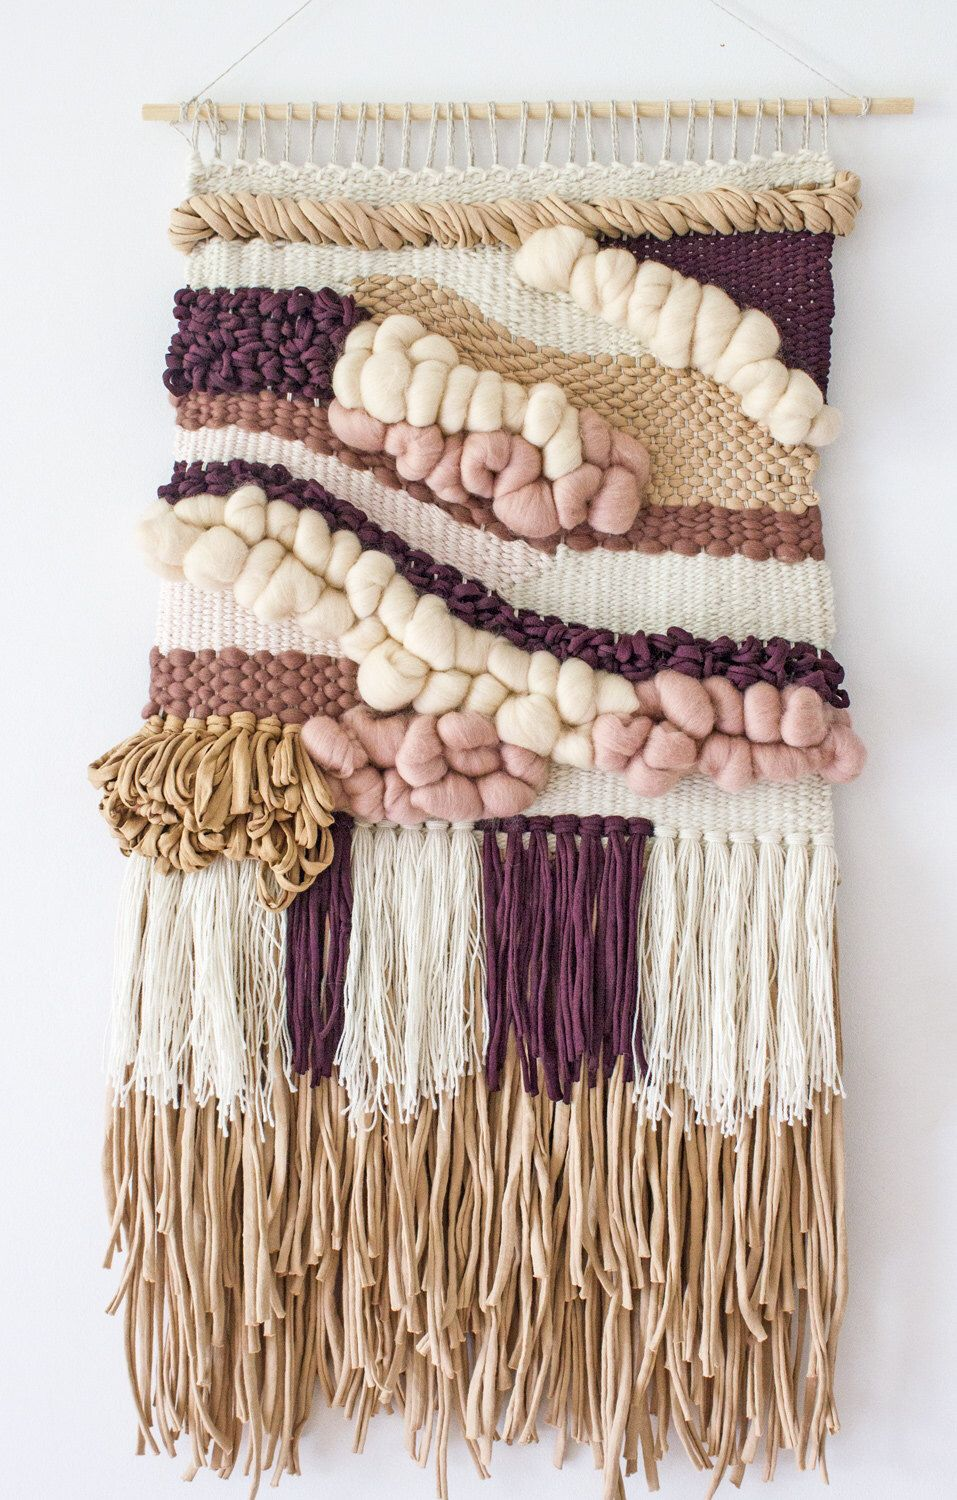 Large Woven Tapestry Wall Hanging 20 Off Woven Wall Weaving Weaving Wall Hanging Wall Art Tapestr Weaving Wall Hanging Woven Wall Art Tapestry Weaving